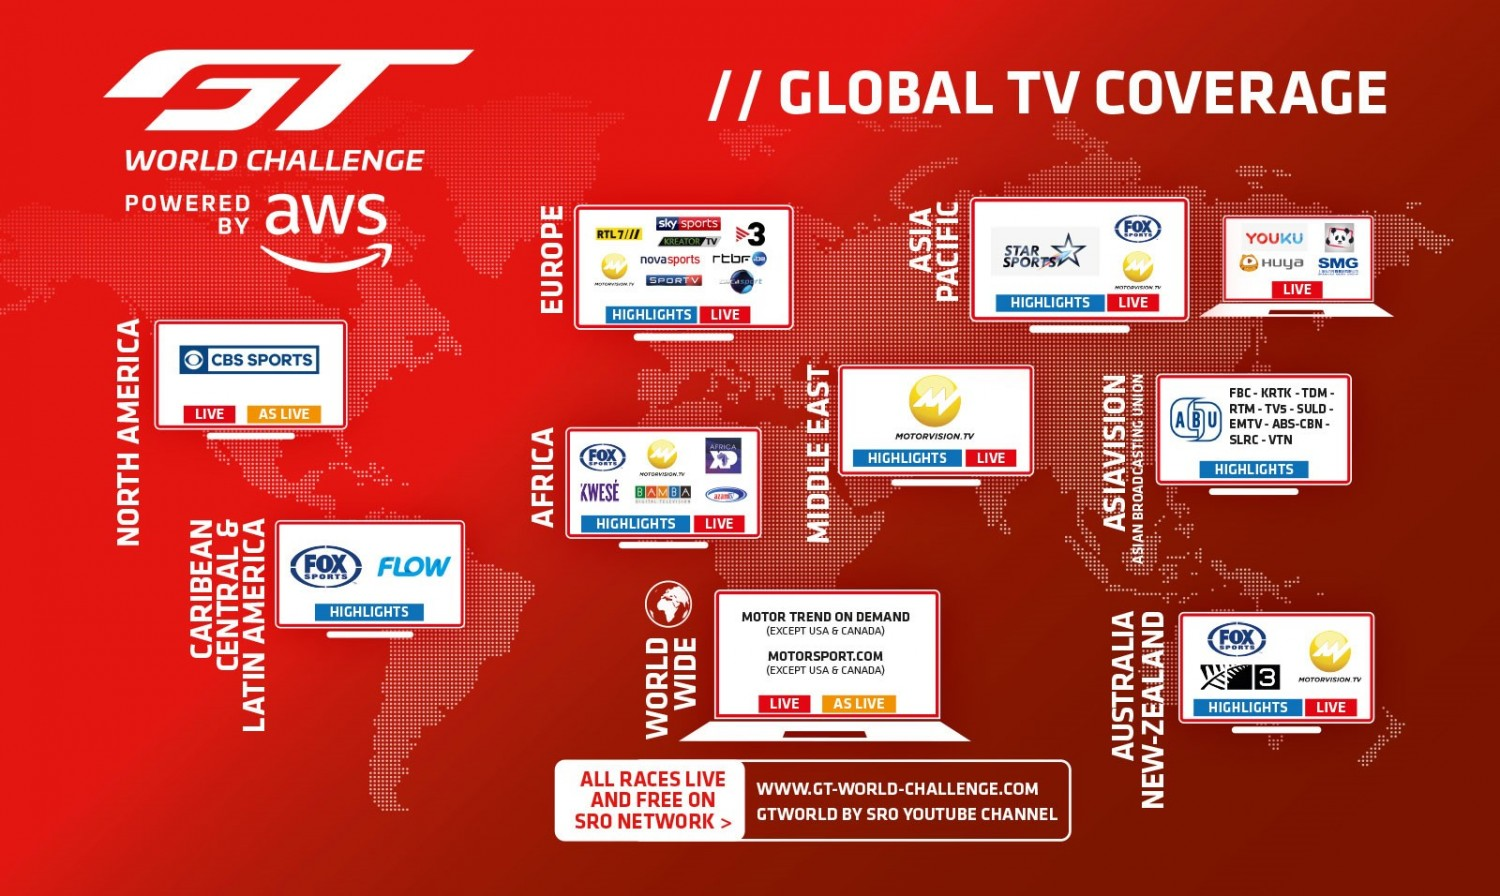 GT World Challenge Powered by AWS confirms extensive television and online coverage for 2020